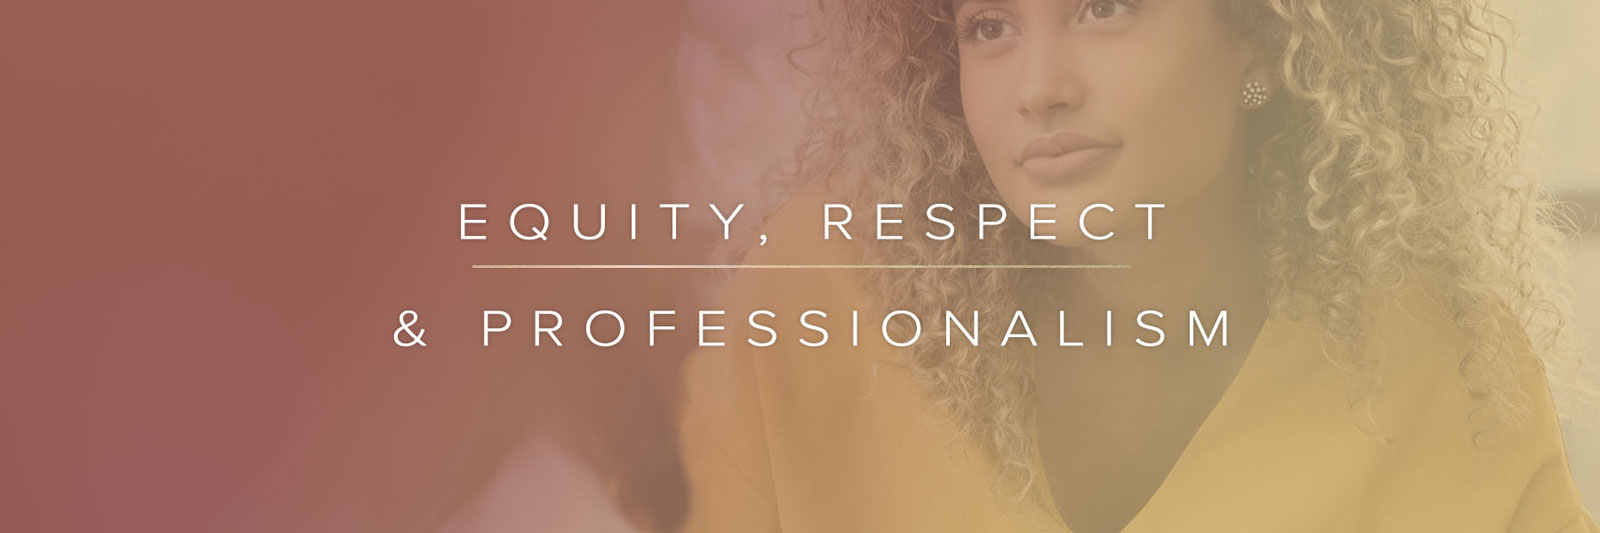 equity, respect and professionalism